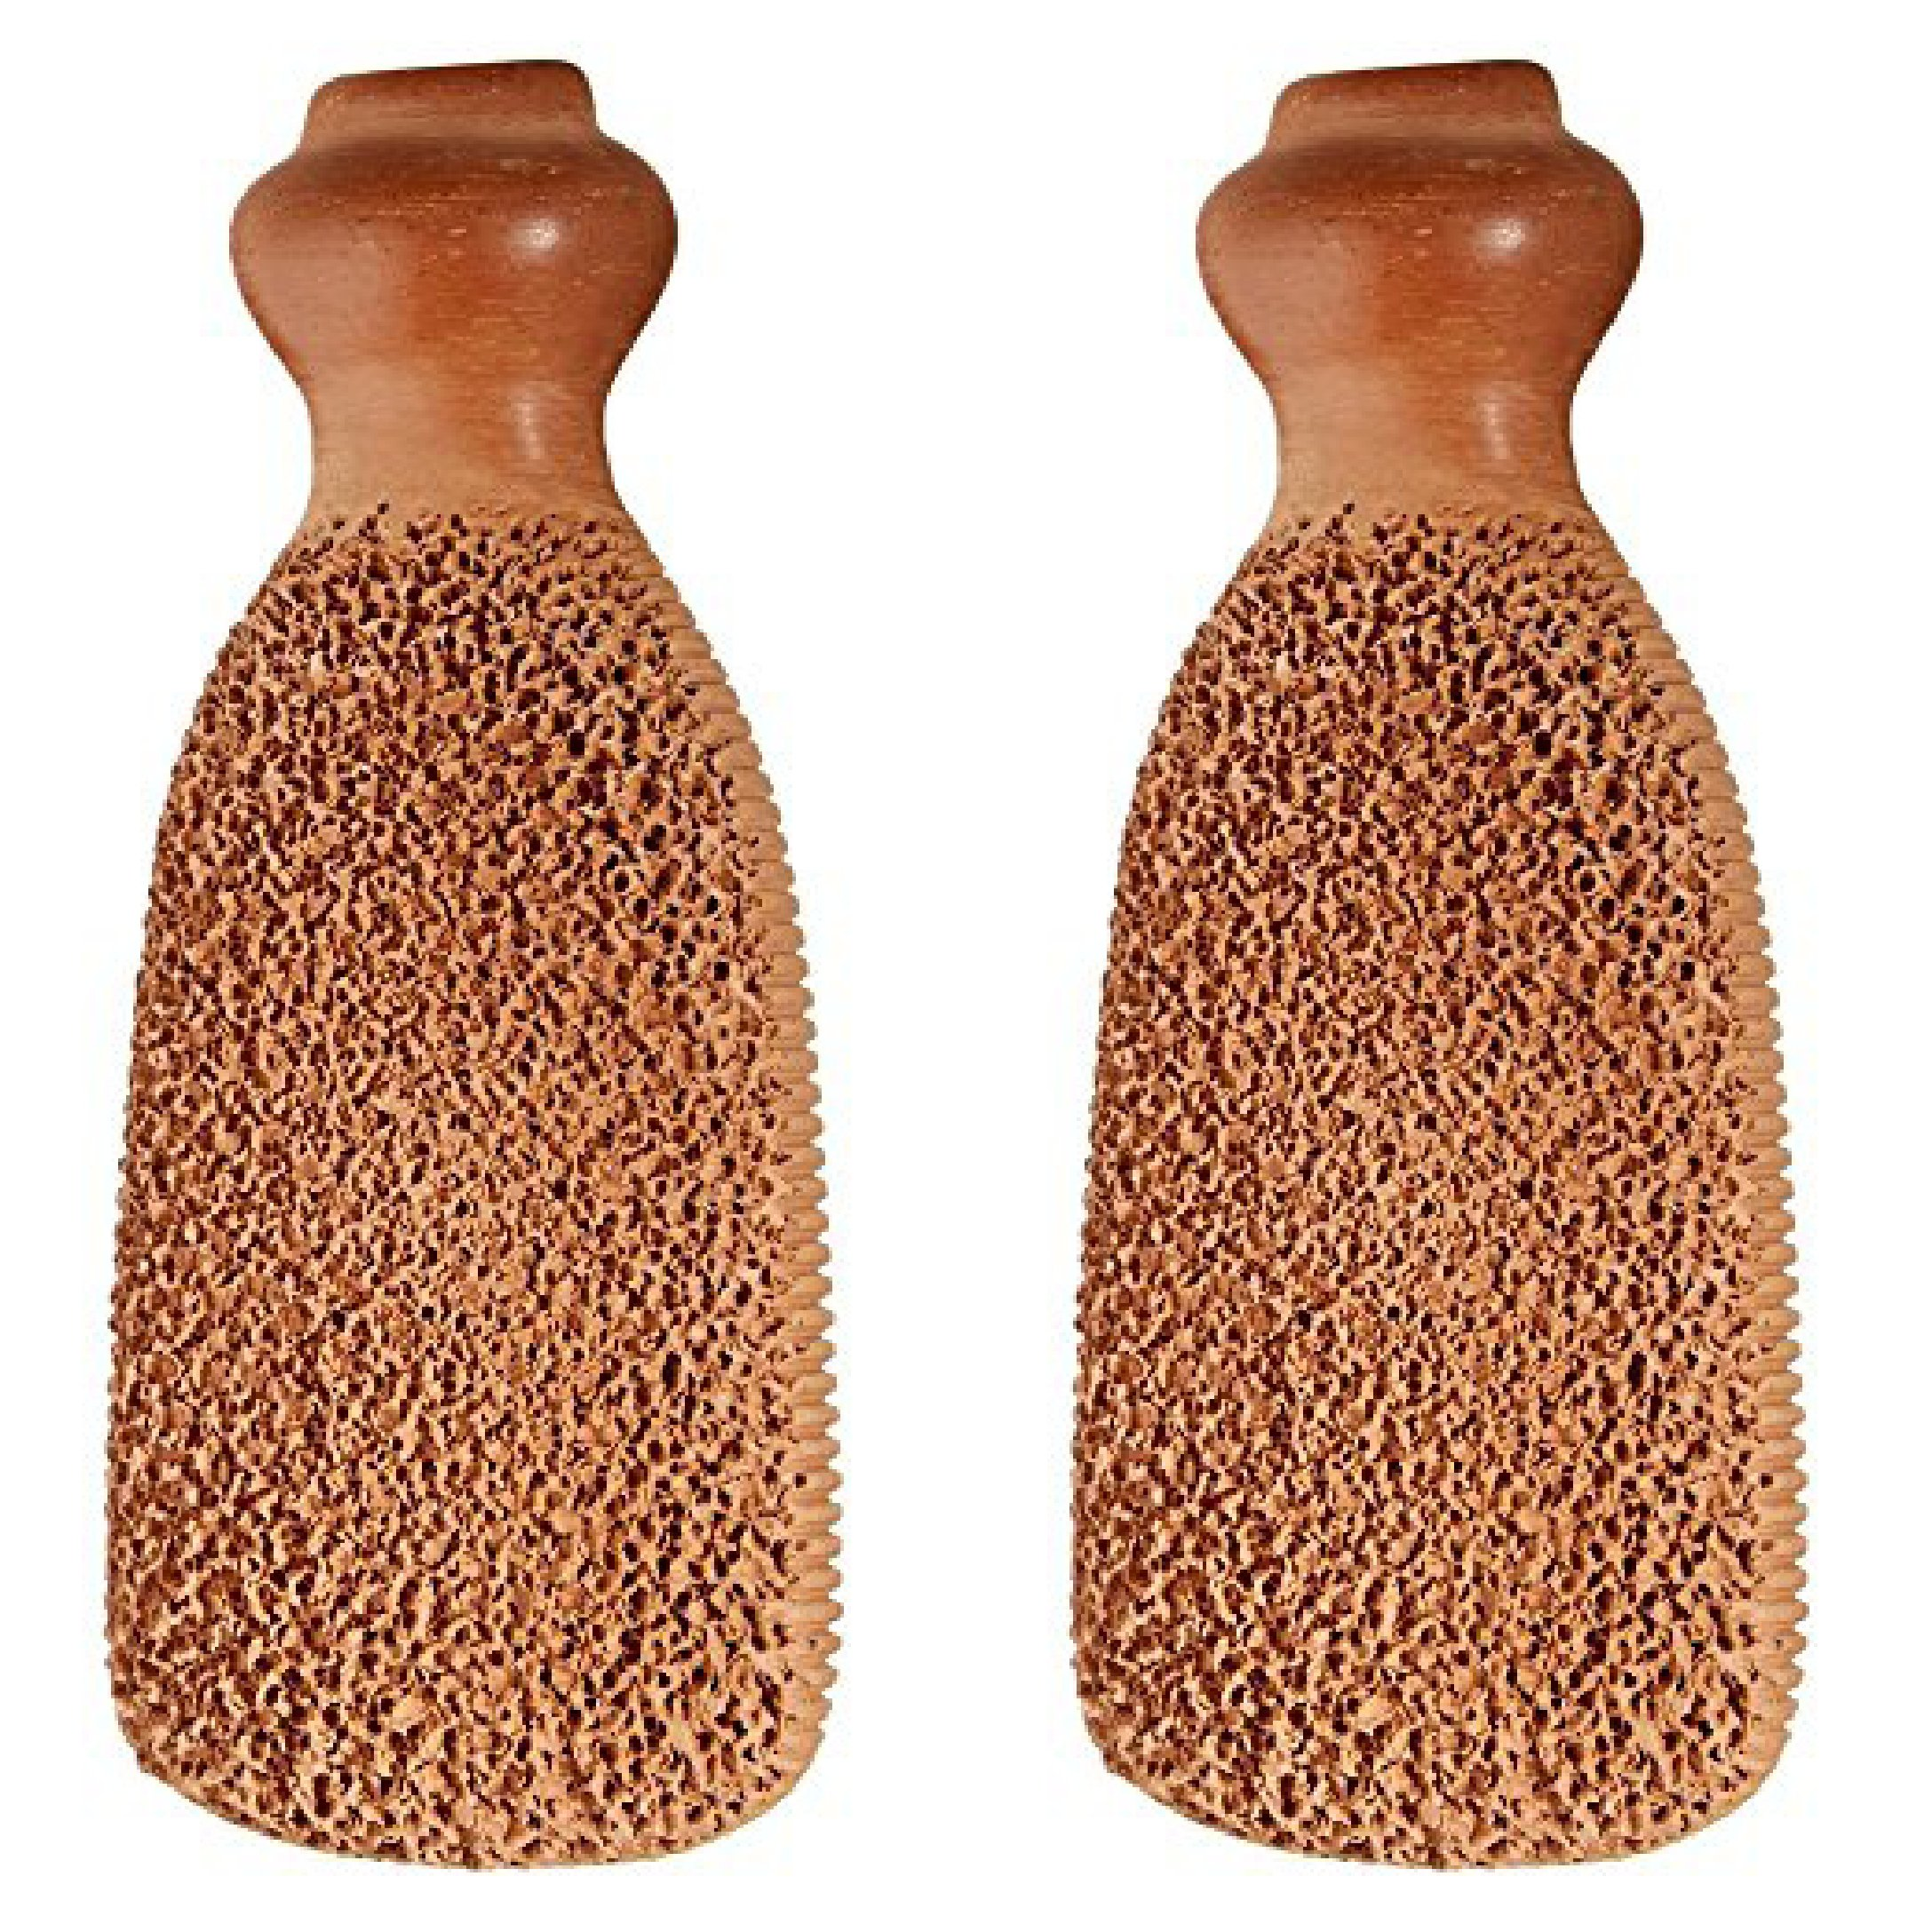 Gilden Tree 2-Sided Terra-Cotta Foot Scrubber (Set of 2) by Gilden Tree (Image #1)